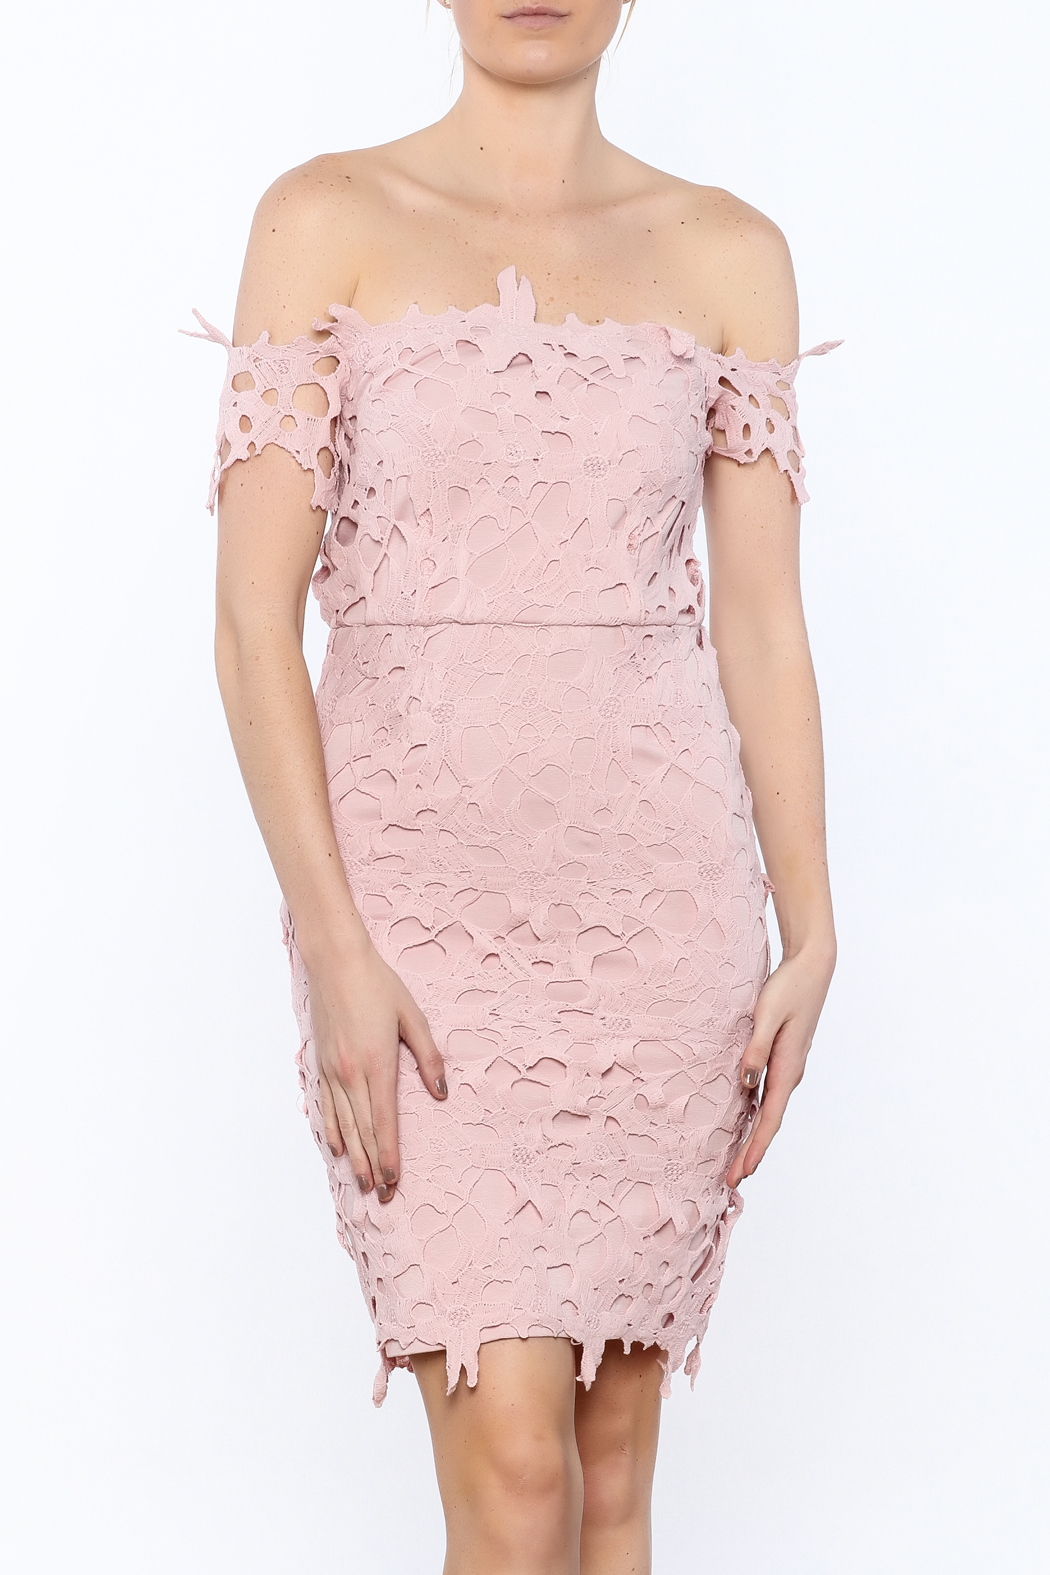 Ark & Co. Pink Crochet Dress - Main Image